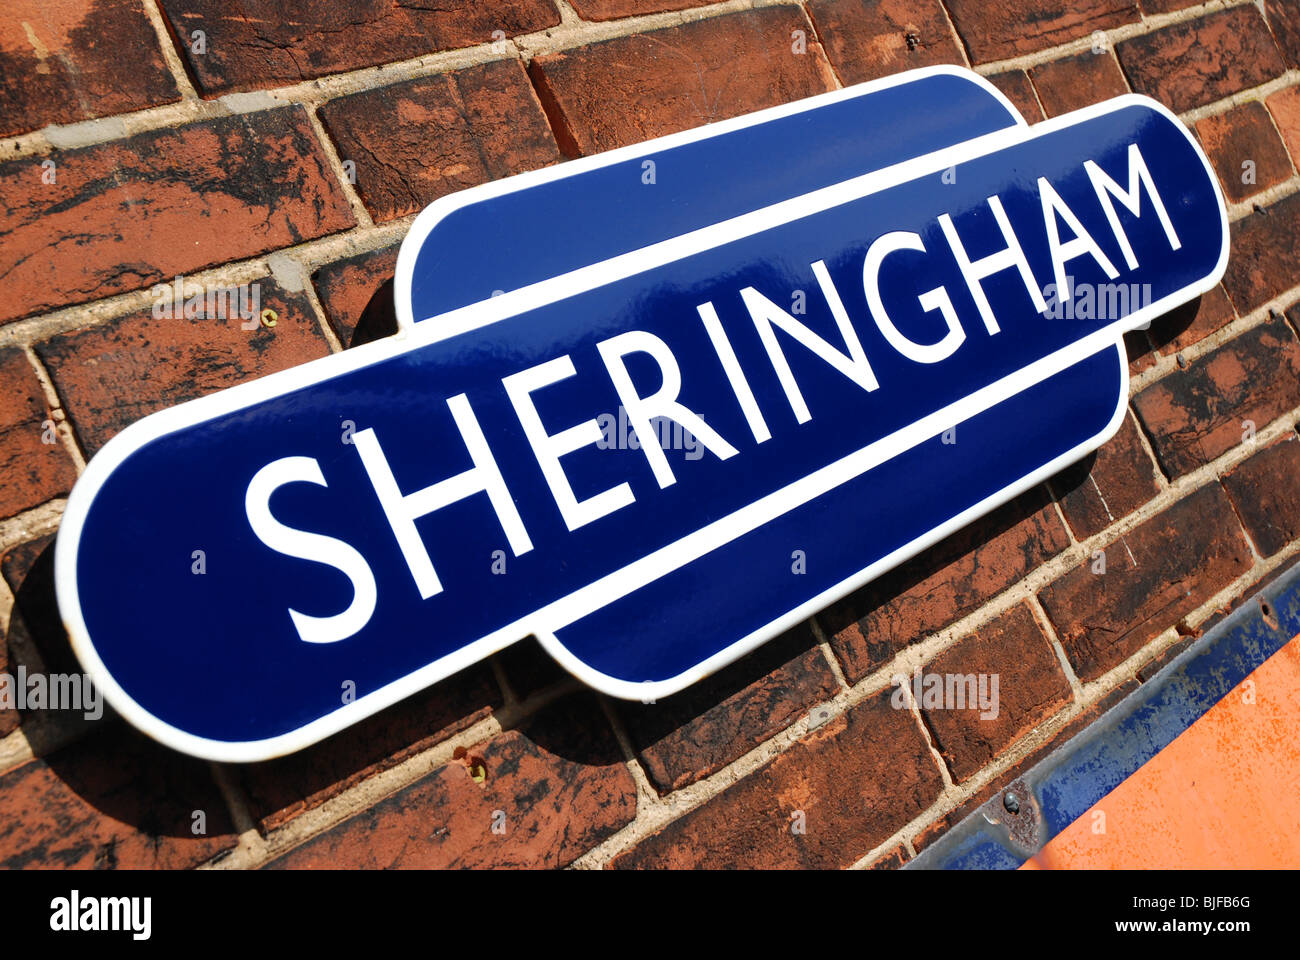 Station sign at Sheringham on the North Norfolk Railway - Stock Image